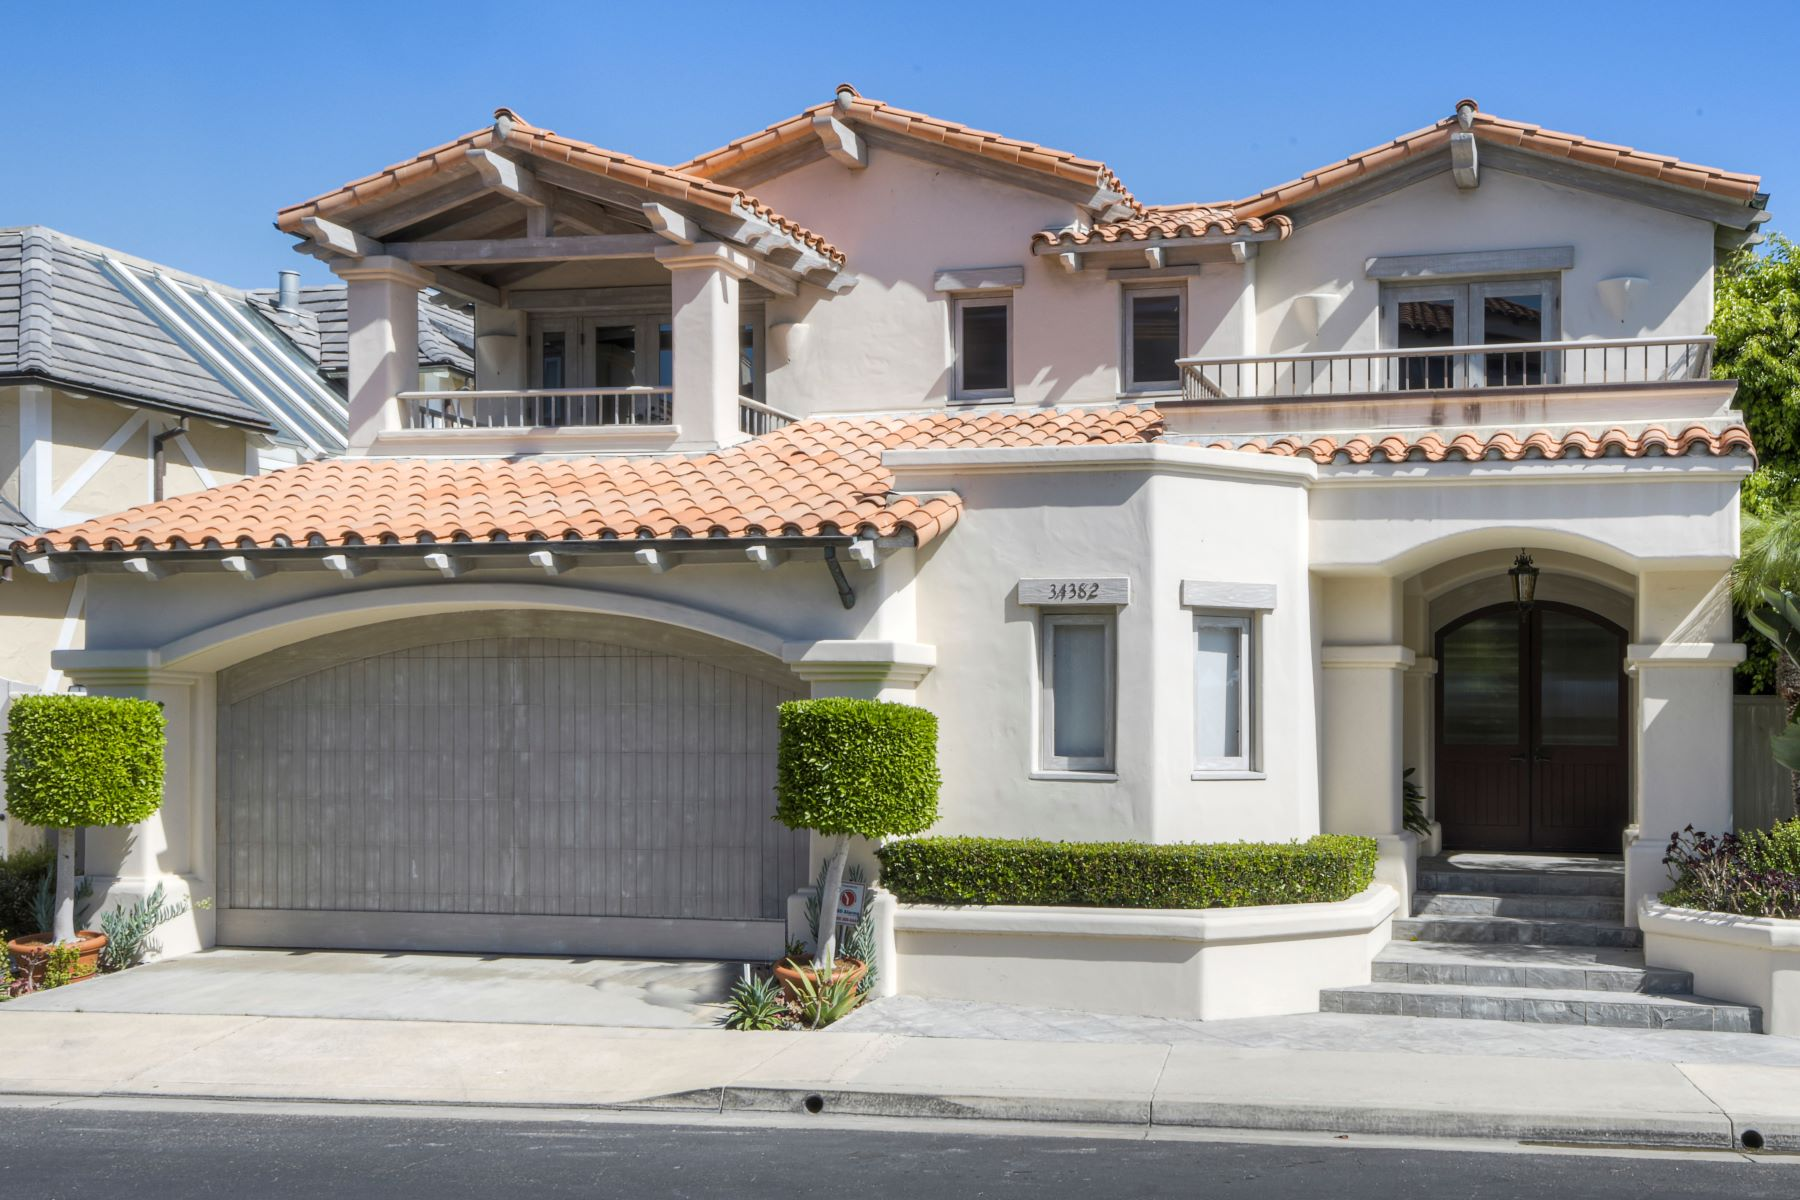 Single Family Homes for Sale at 34382 Port Lantern, Dana Point 34382 Port Lantern Dana Point, California 92629 United States